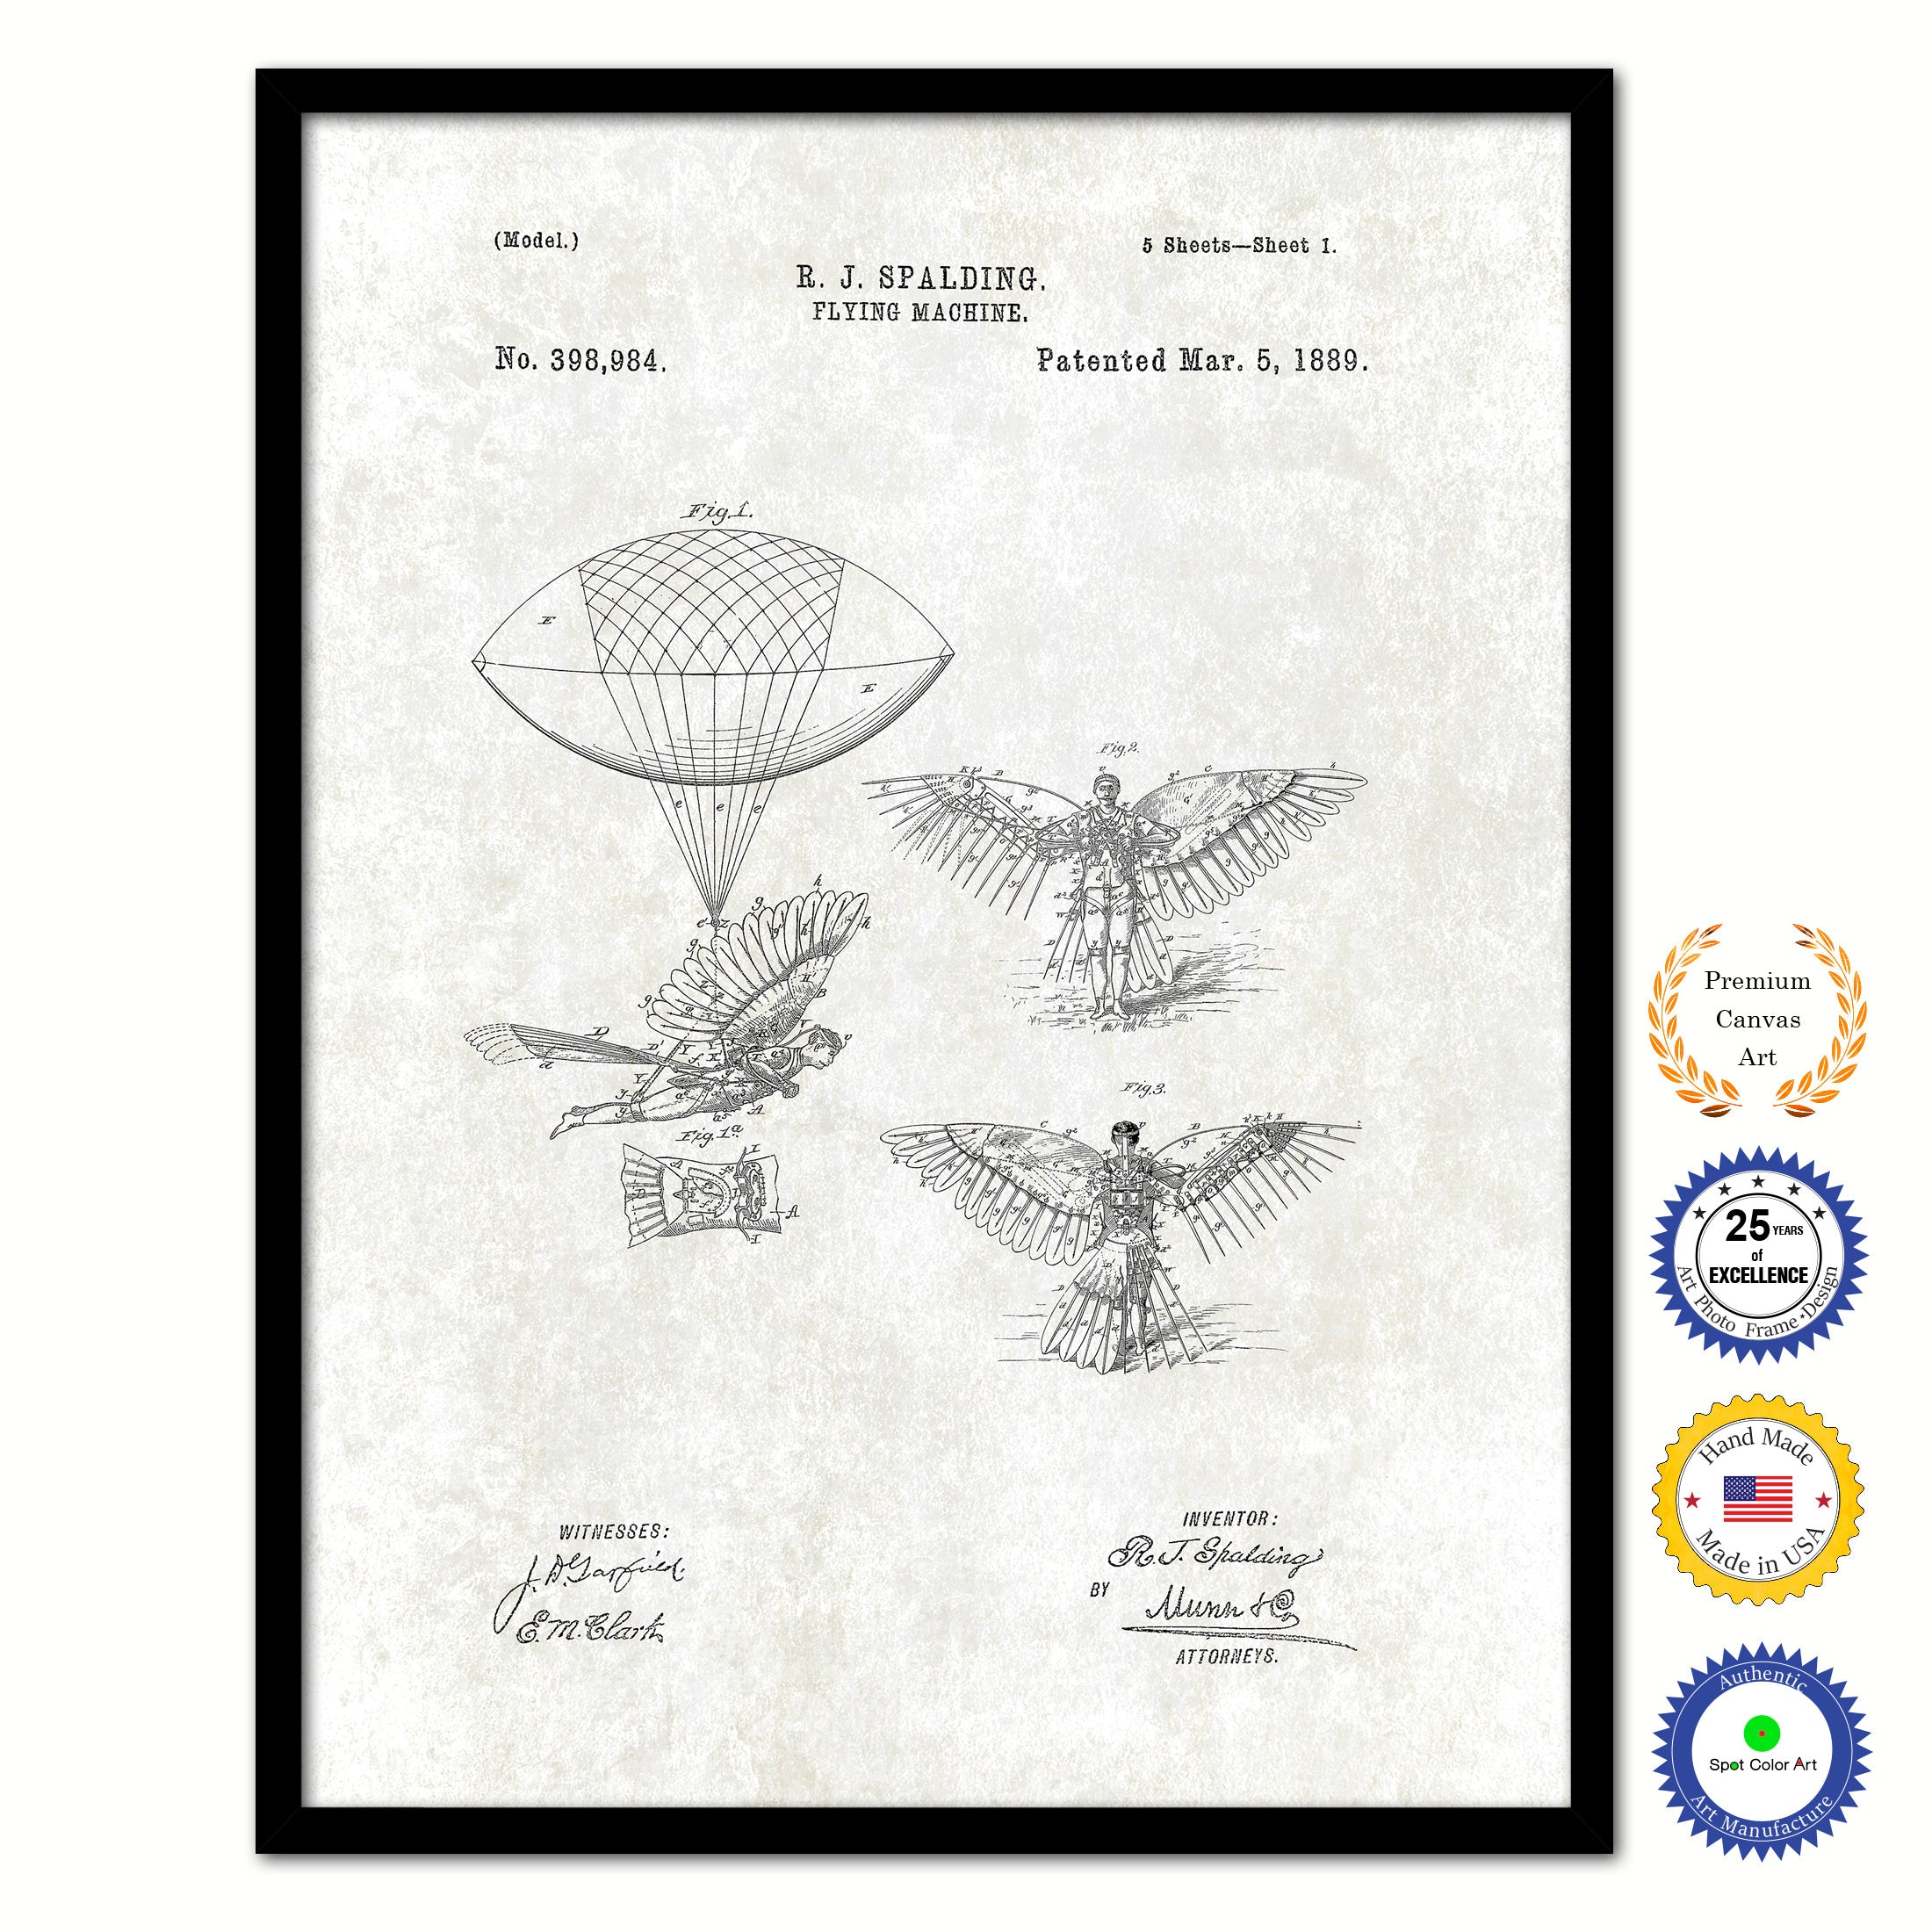 1889 Flying Machine Vintage Patent Artwork Black Framed Canvas Print Home Office Decor Great for Pilot Gift